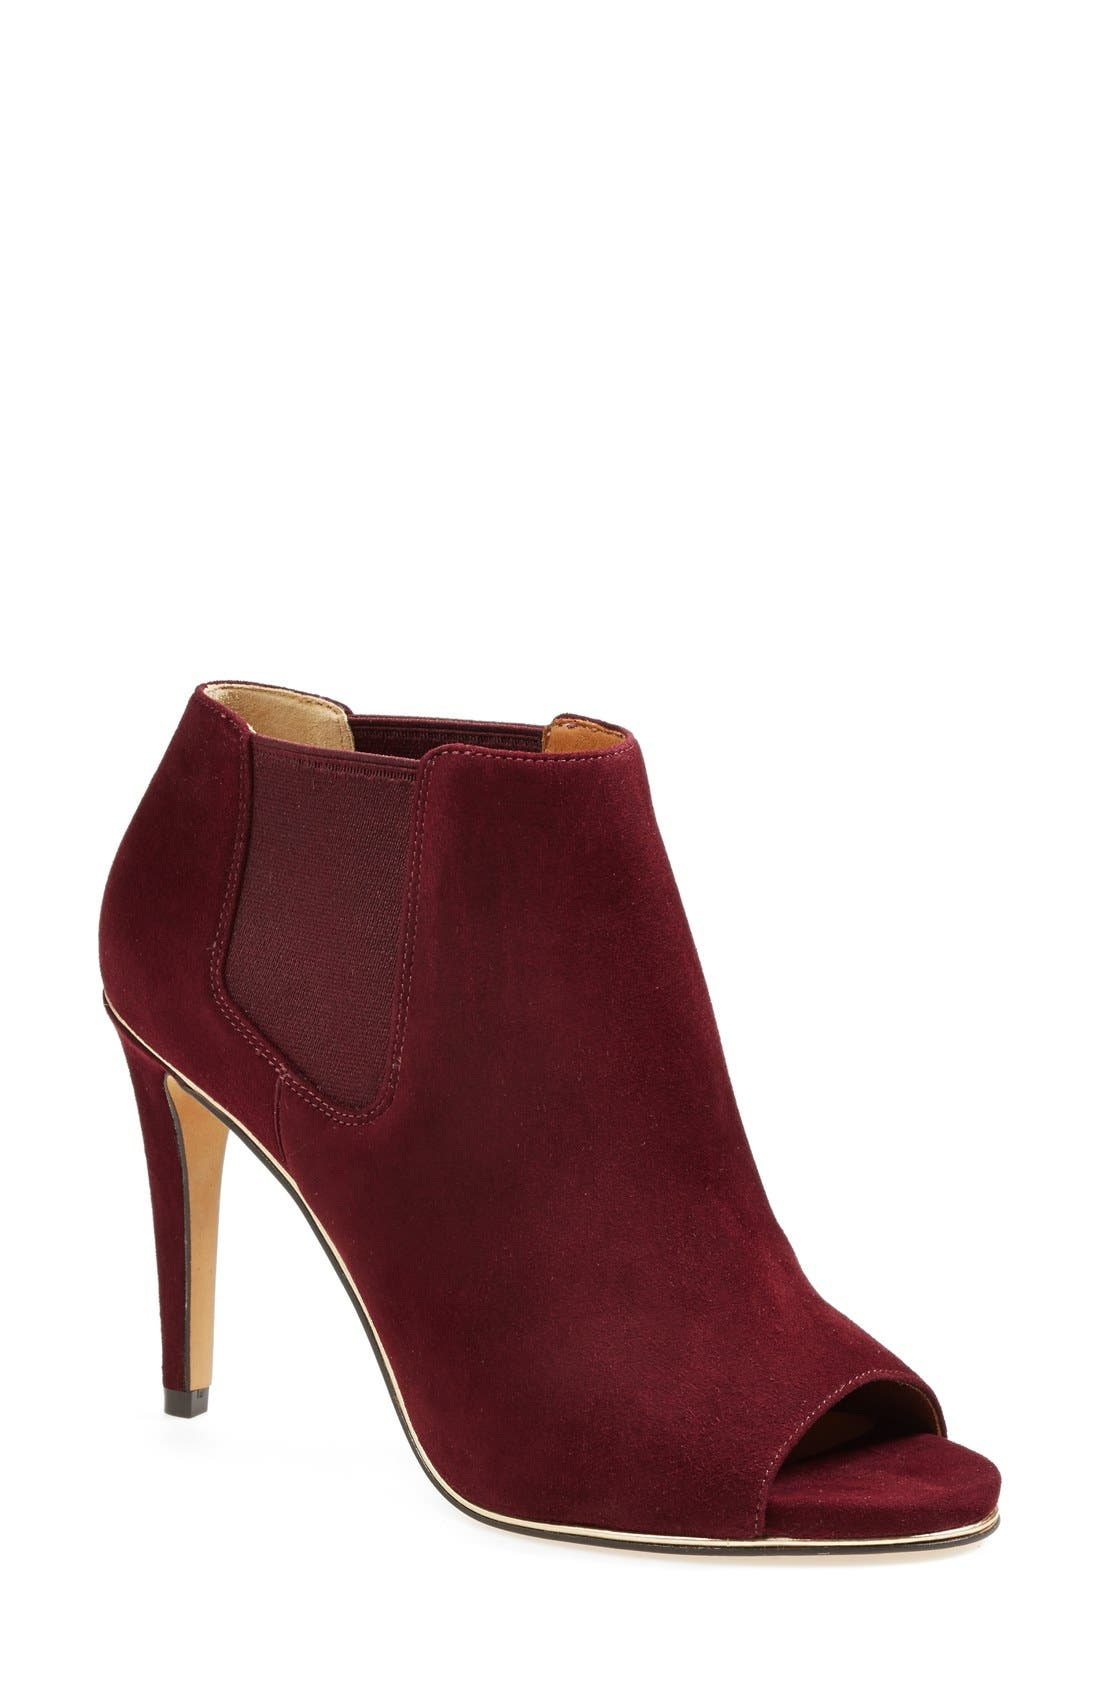 Alternate Image 1 Selected - COACH 'Adrianna' Suede Peeptoe Bootie (Women)